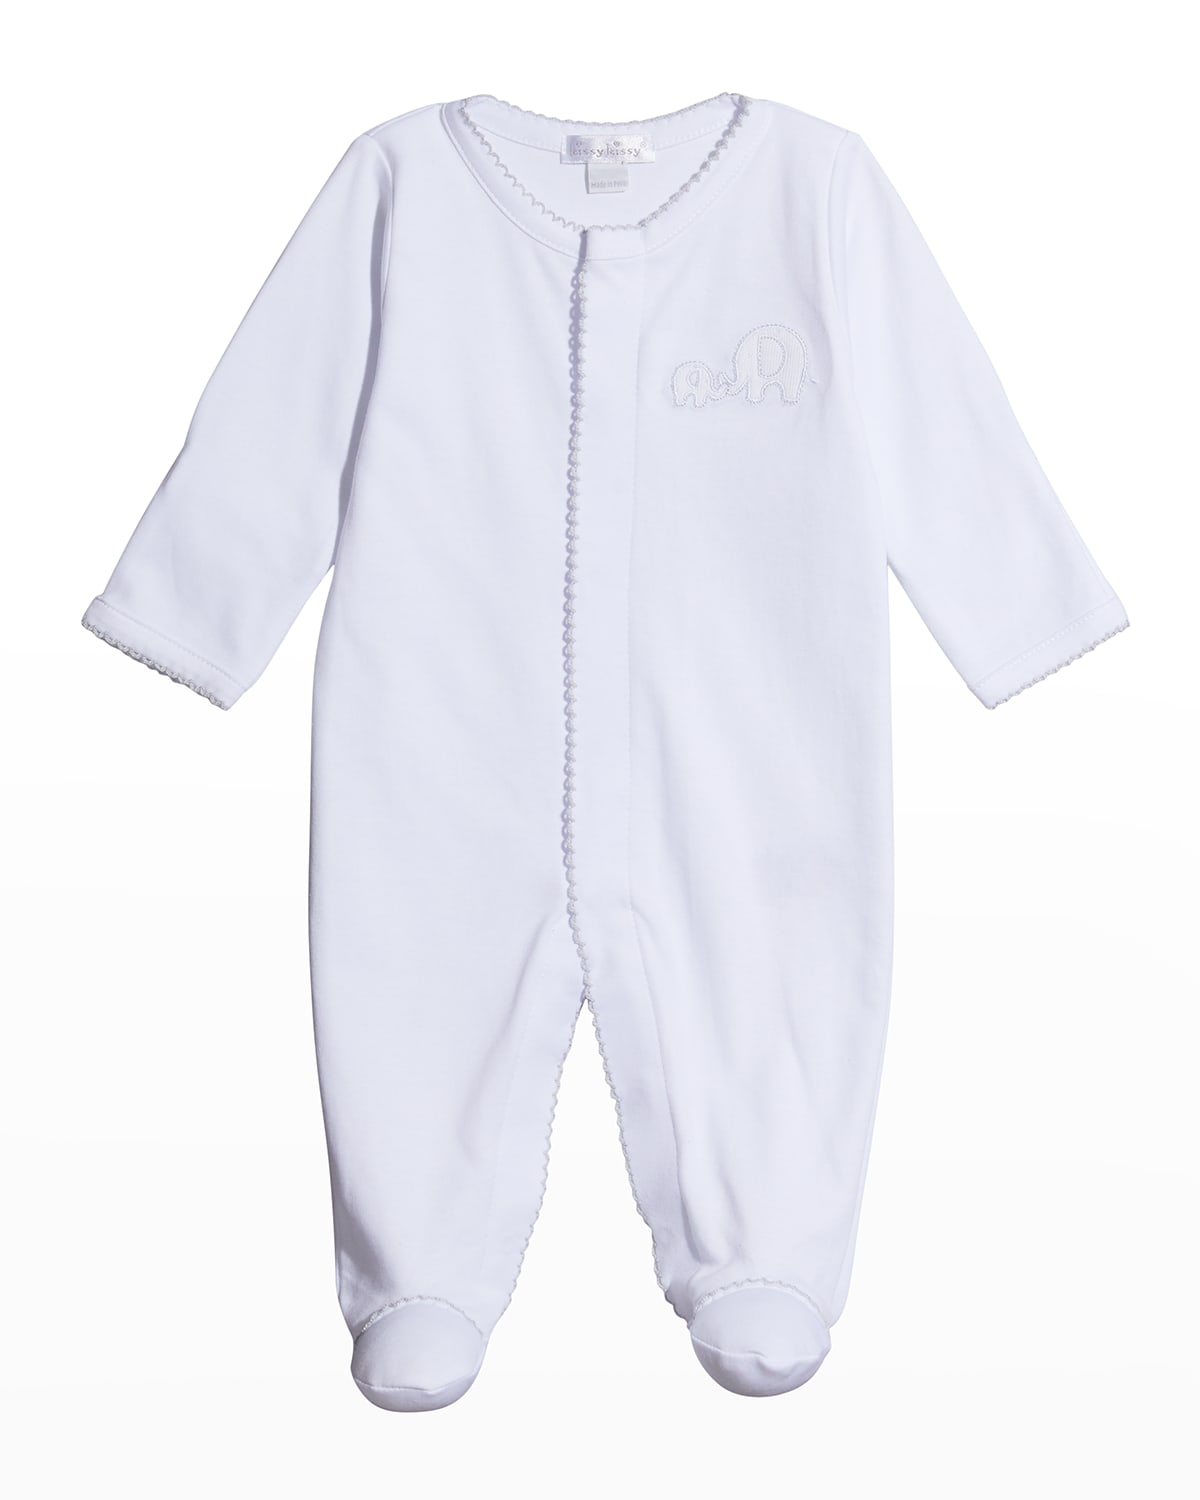 Girl's Elephant Love Embroidered Footie Pajamas